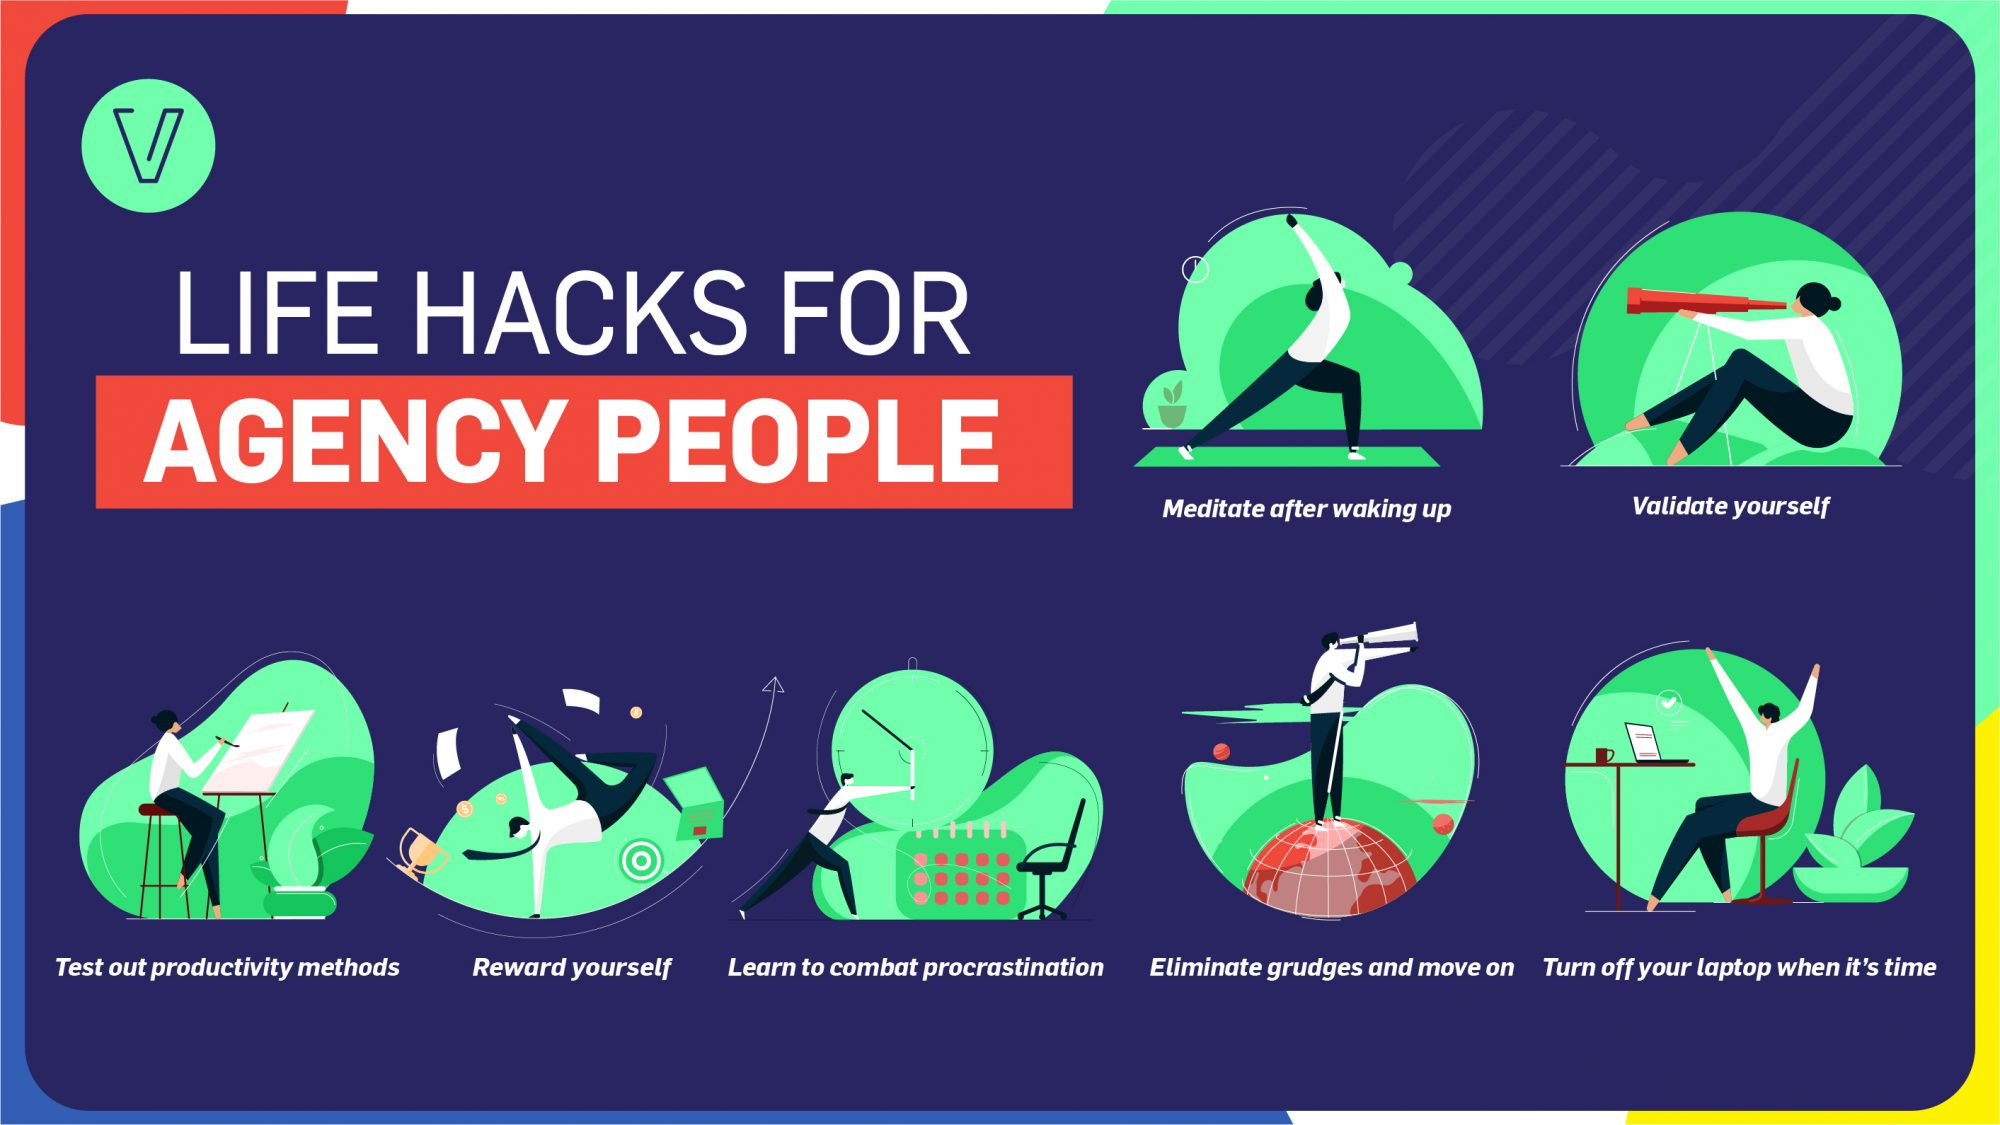 Life Hacks for Agency People? My Personal Review of 7 That Worked and Two That Didn't